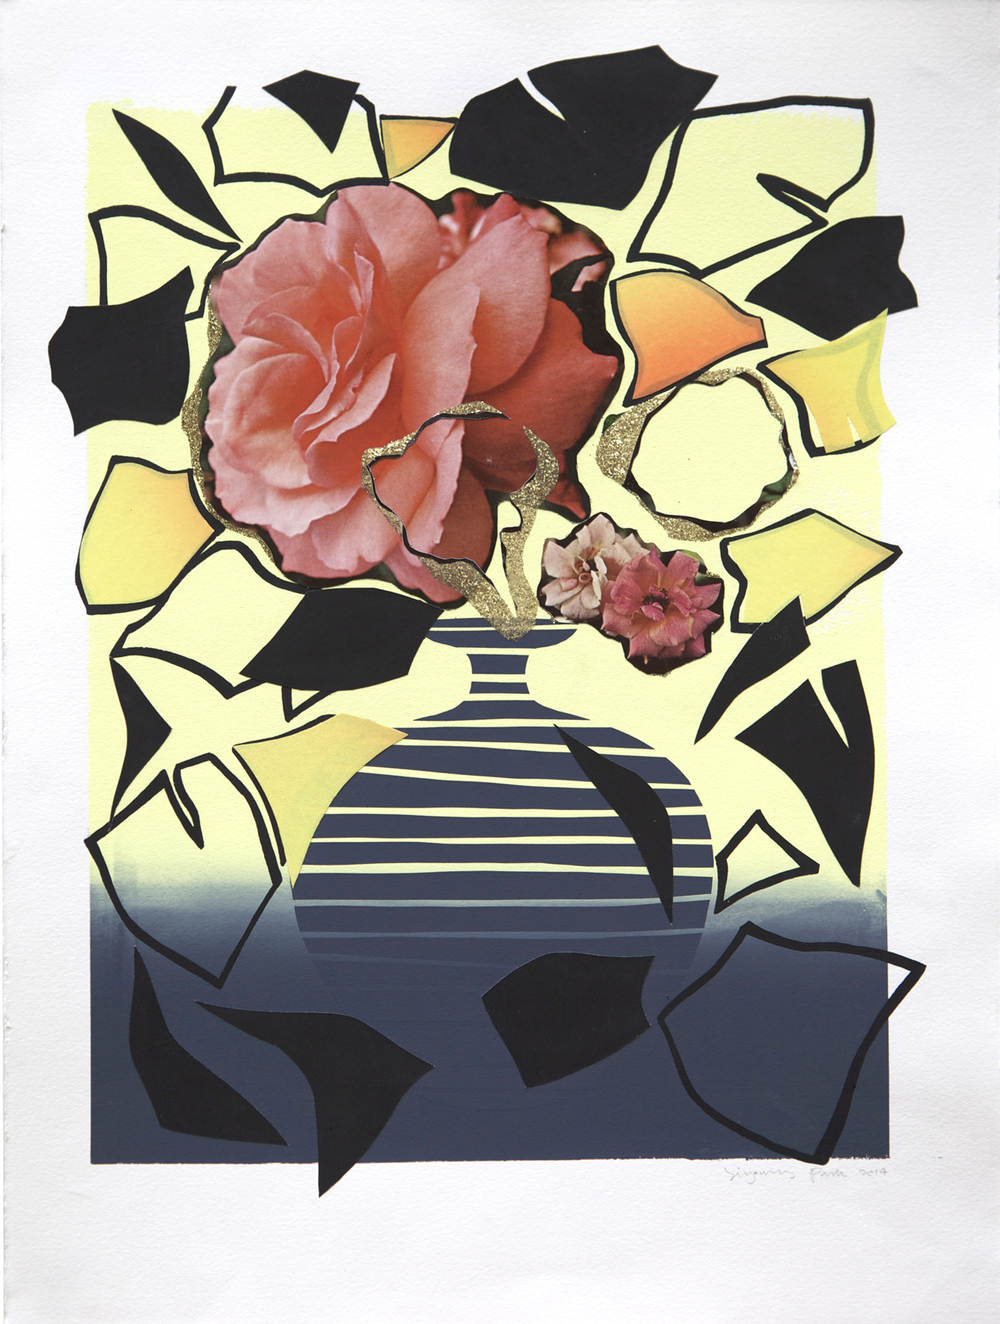 Composition Rose  (2014), Screen print, collage and glitter, 20 x 15 in.